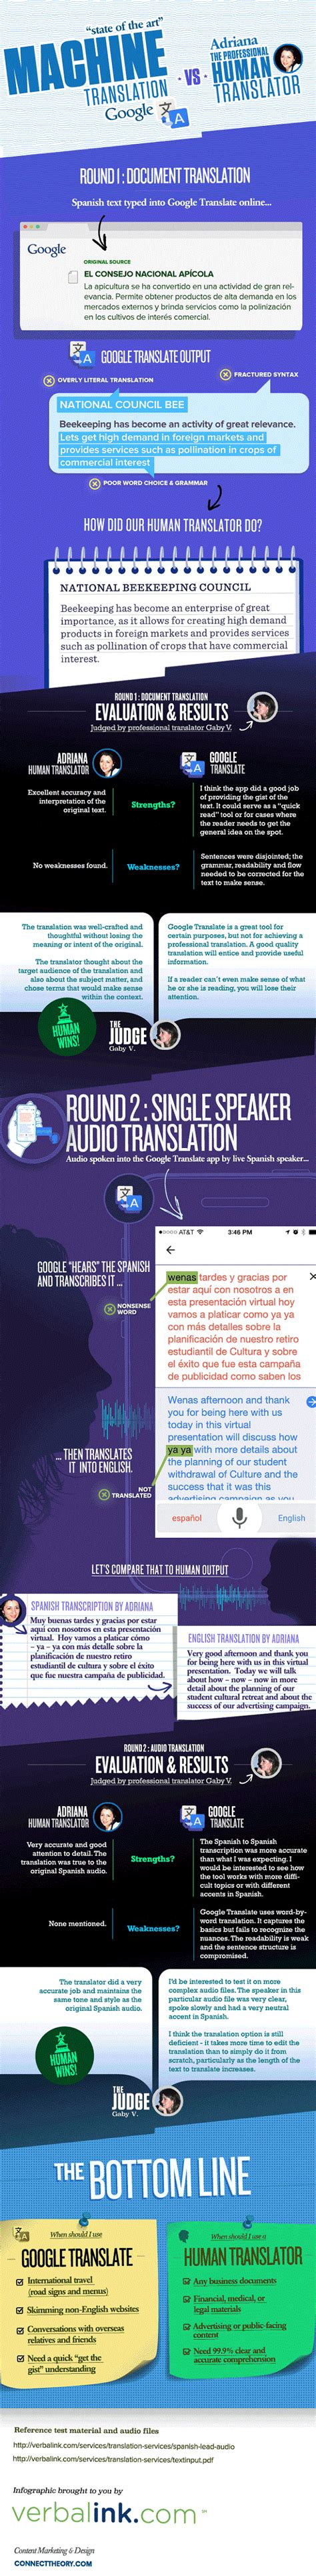 to human translator translate vs human translation comparison infographic